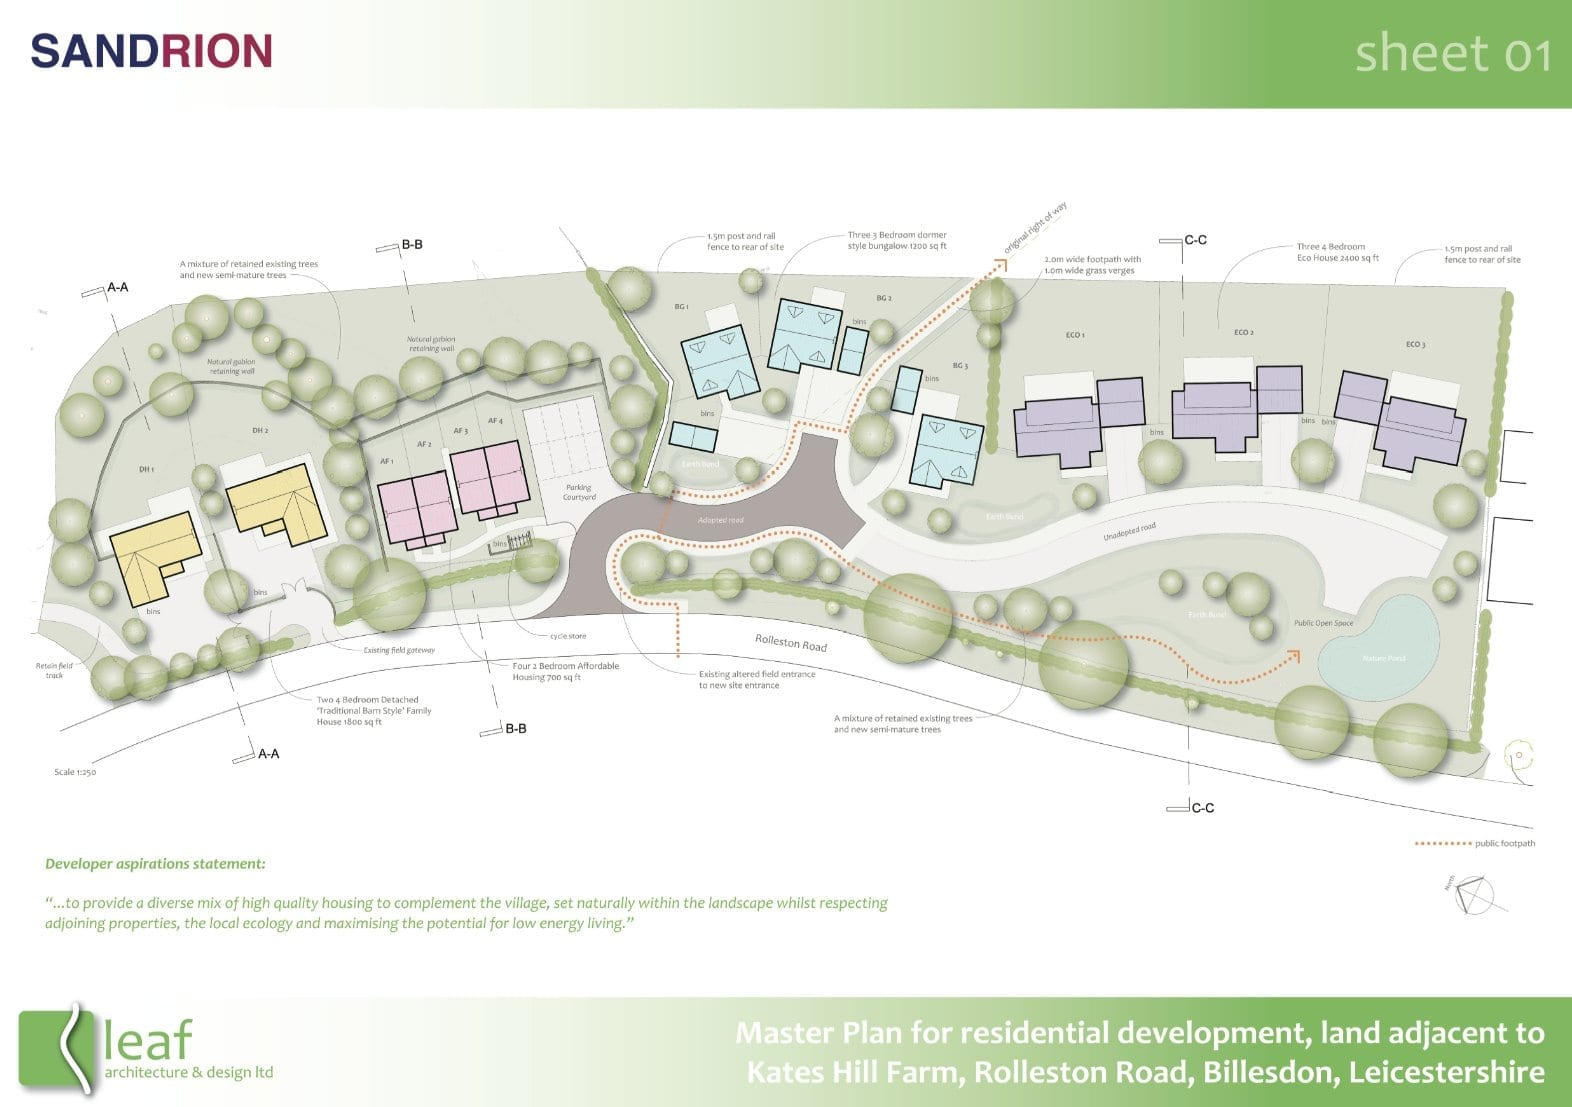 Leaf Architectures Village Masterplan development gets overwhelmingly support and green light!!